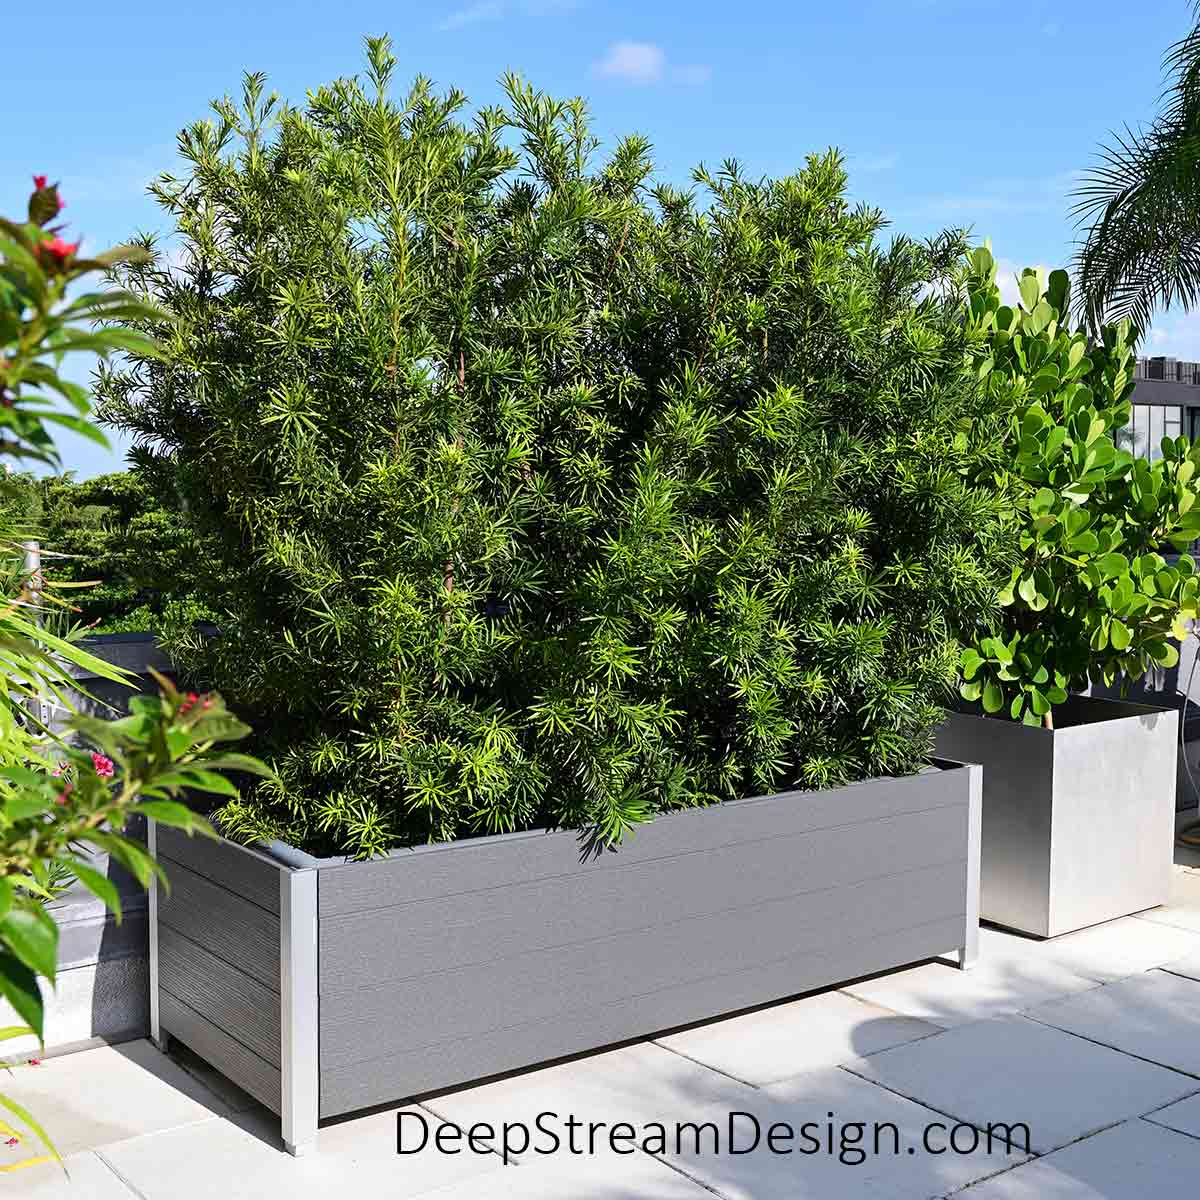 A large rectangular gray recycled plastic lumber Mariner Commercial Wood Planter Privacy Screen is used to create an 8-foot-tall hedge for a rooftop deck dining area. Next to it is DeepStream's modern aluminum planter for trees in the form of a square cube growing a tropical sea grape tree adding variety to a long high natural green privacy screen perfect for restaurants.